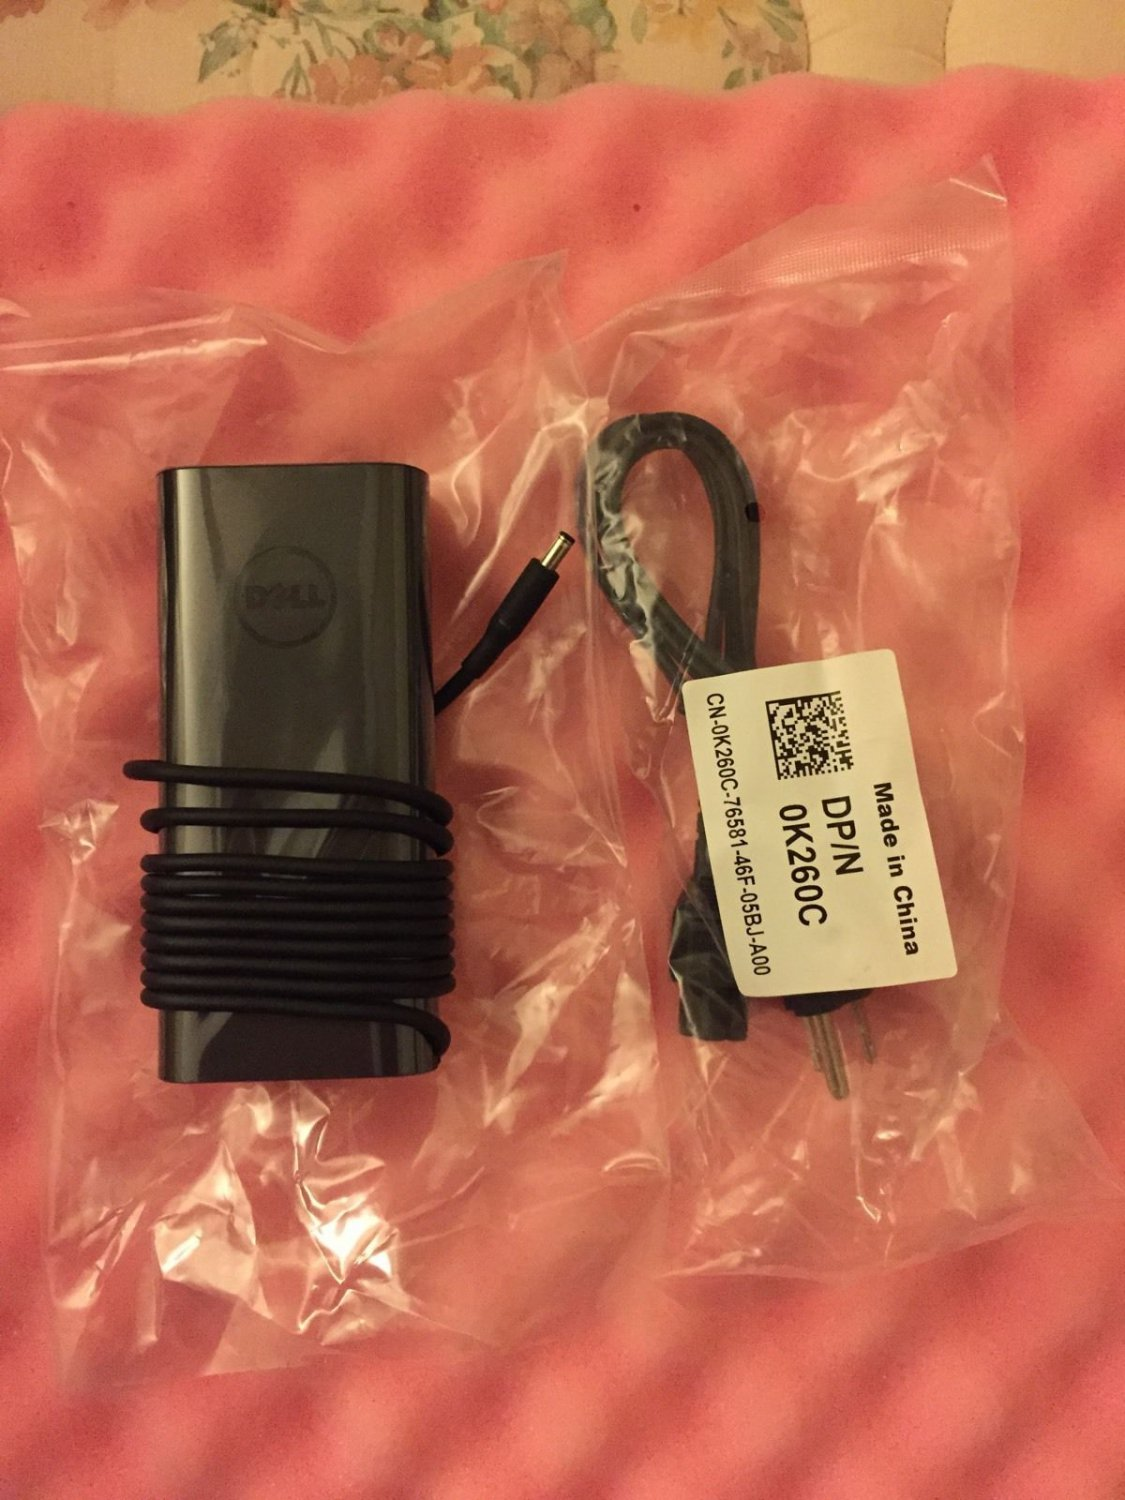 New Dell 130W AC Power Adapter DA130PM130, 0RN7NW, RN7NW, 332-1829